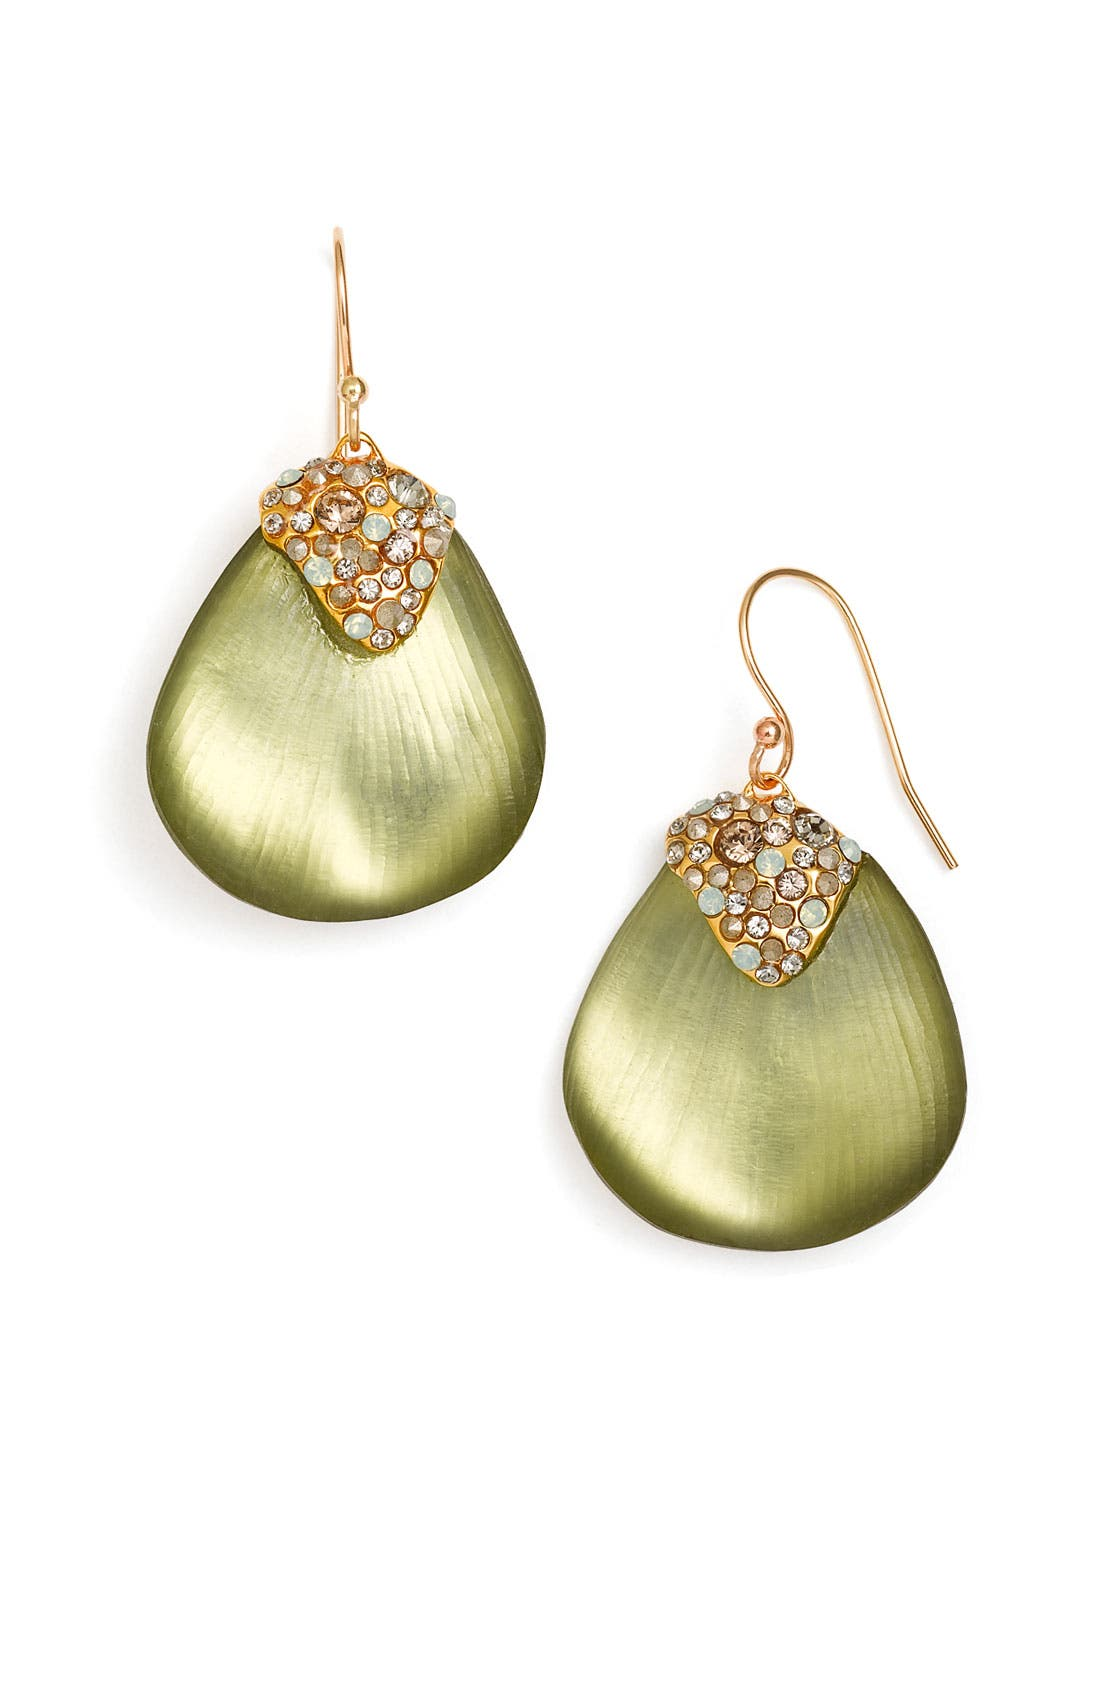 Main Image - Alexis Bittar 'Zanzibar' Small Rose Petal Earrings